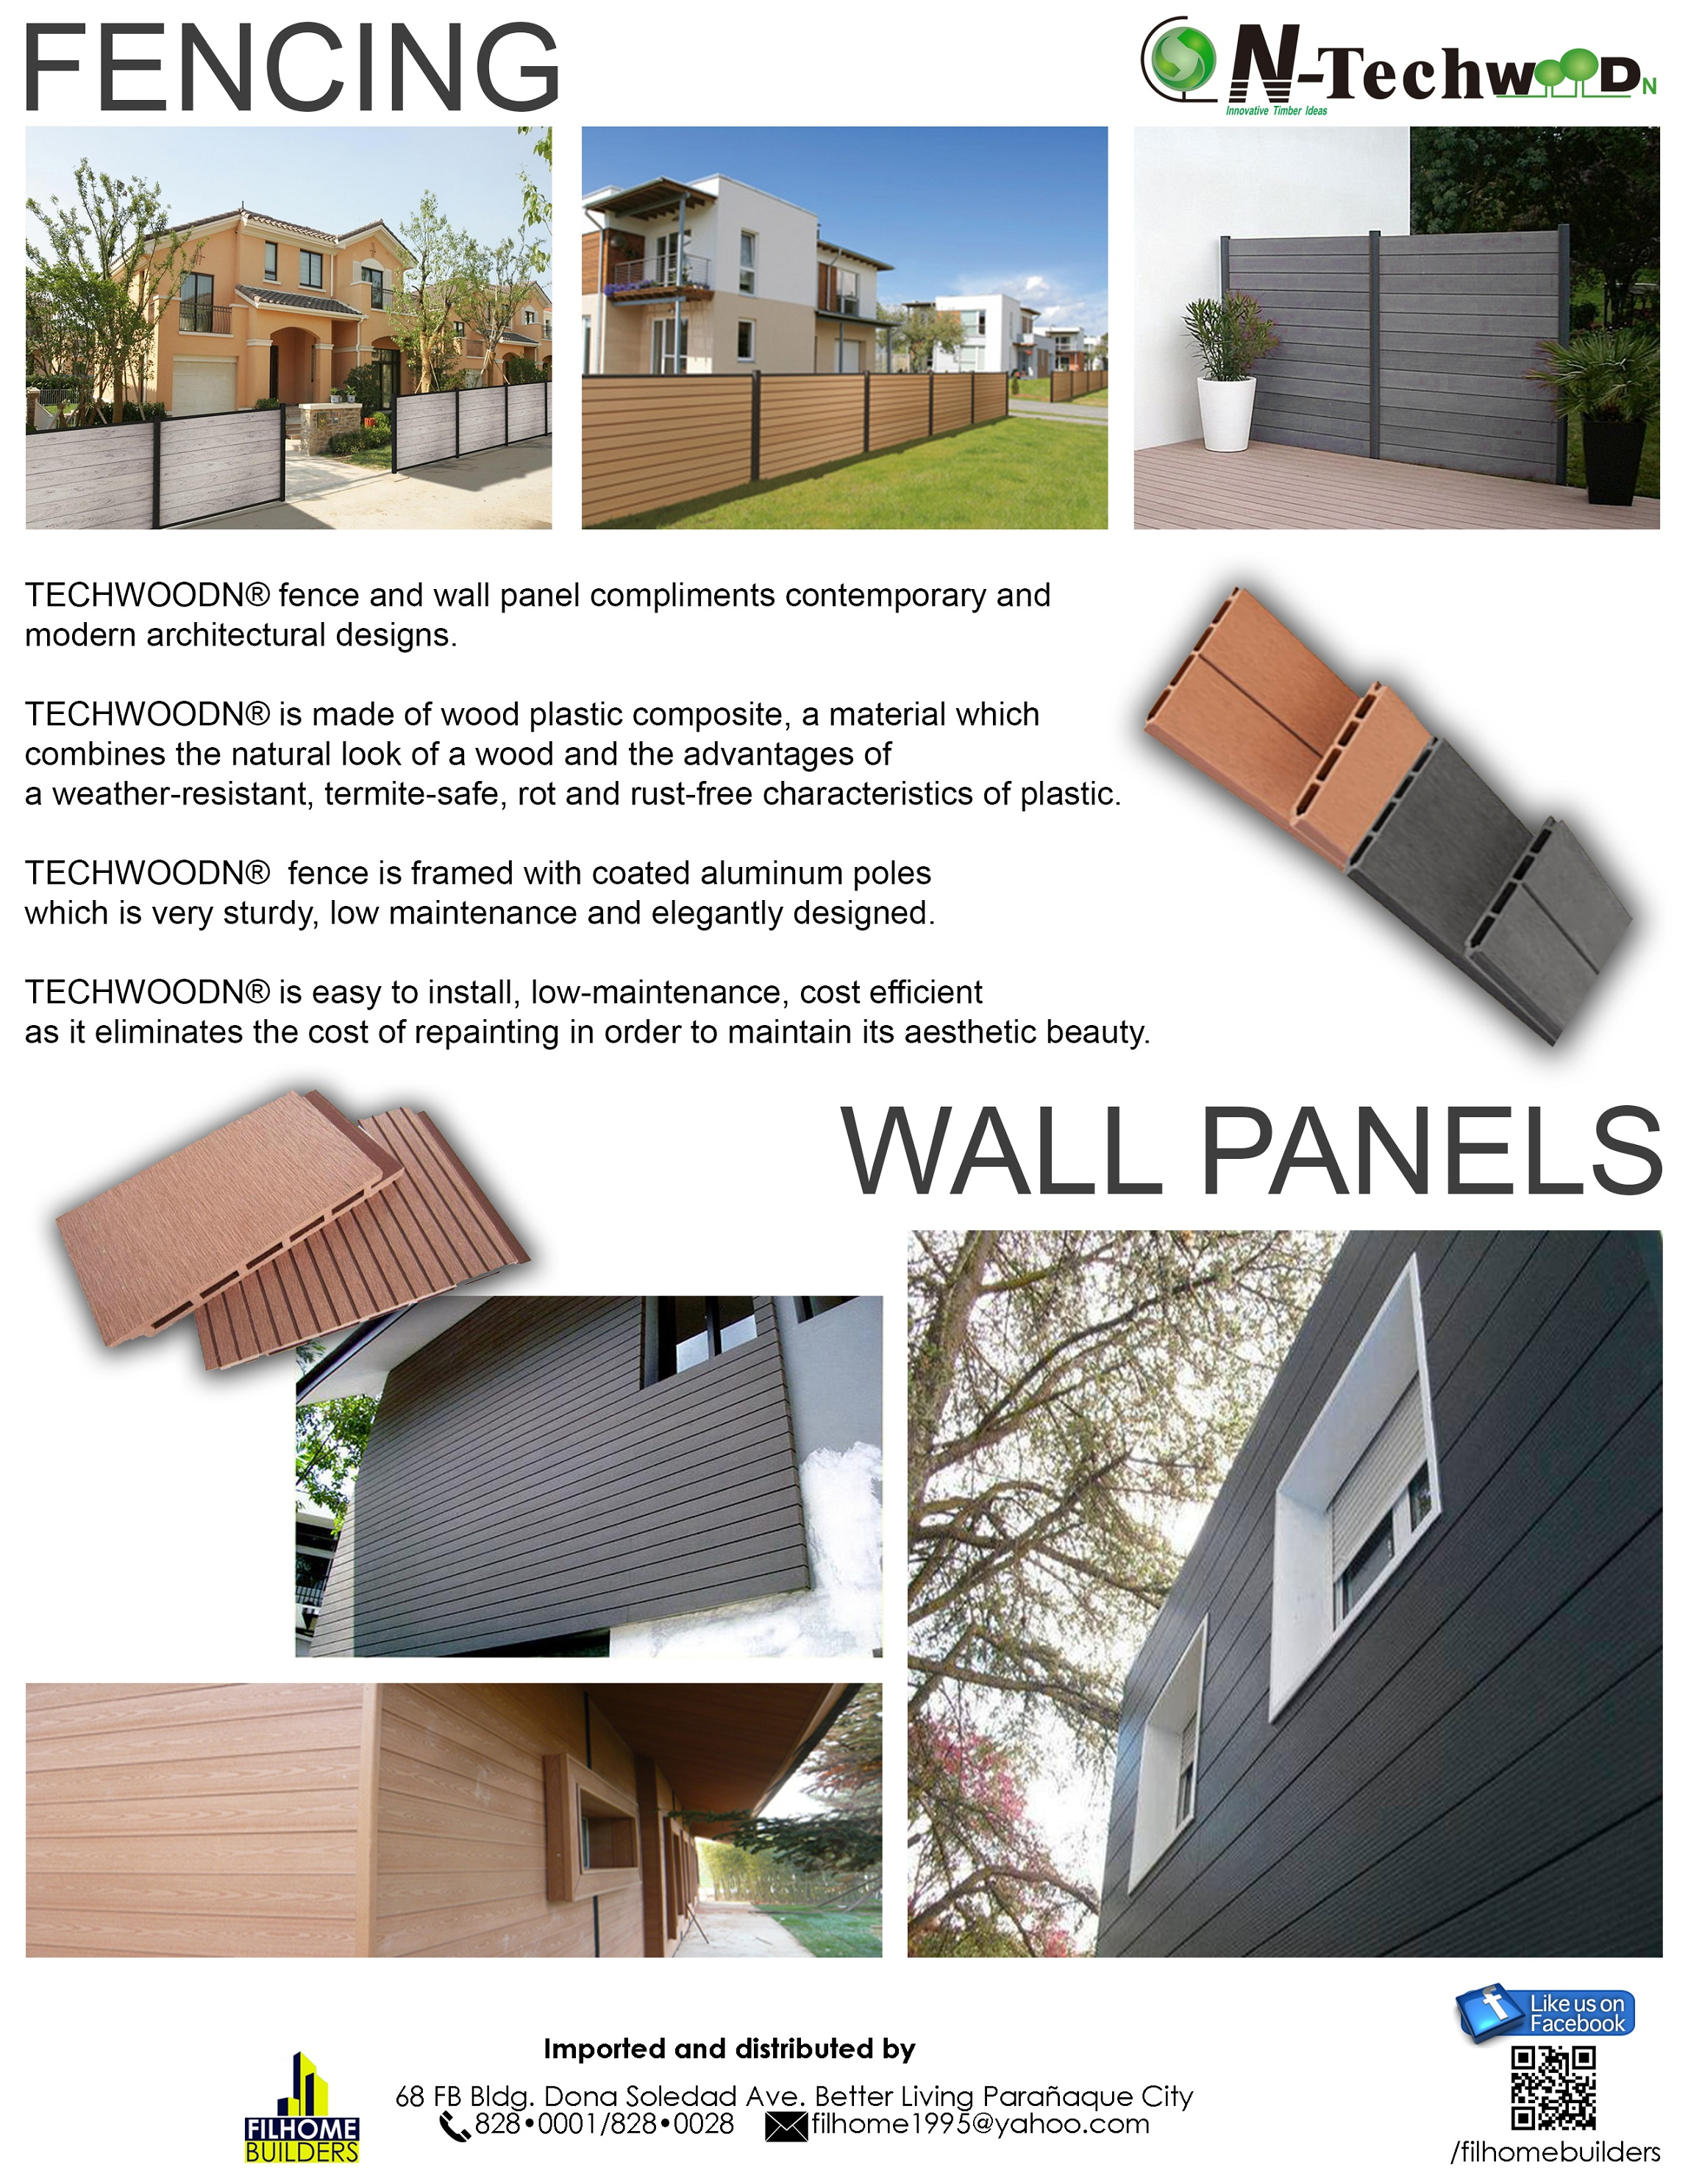 TECHWOOD FENCING & WALL PANELS_copy